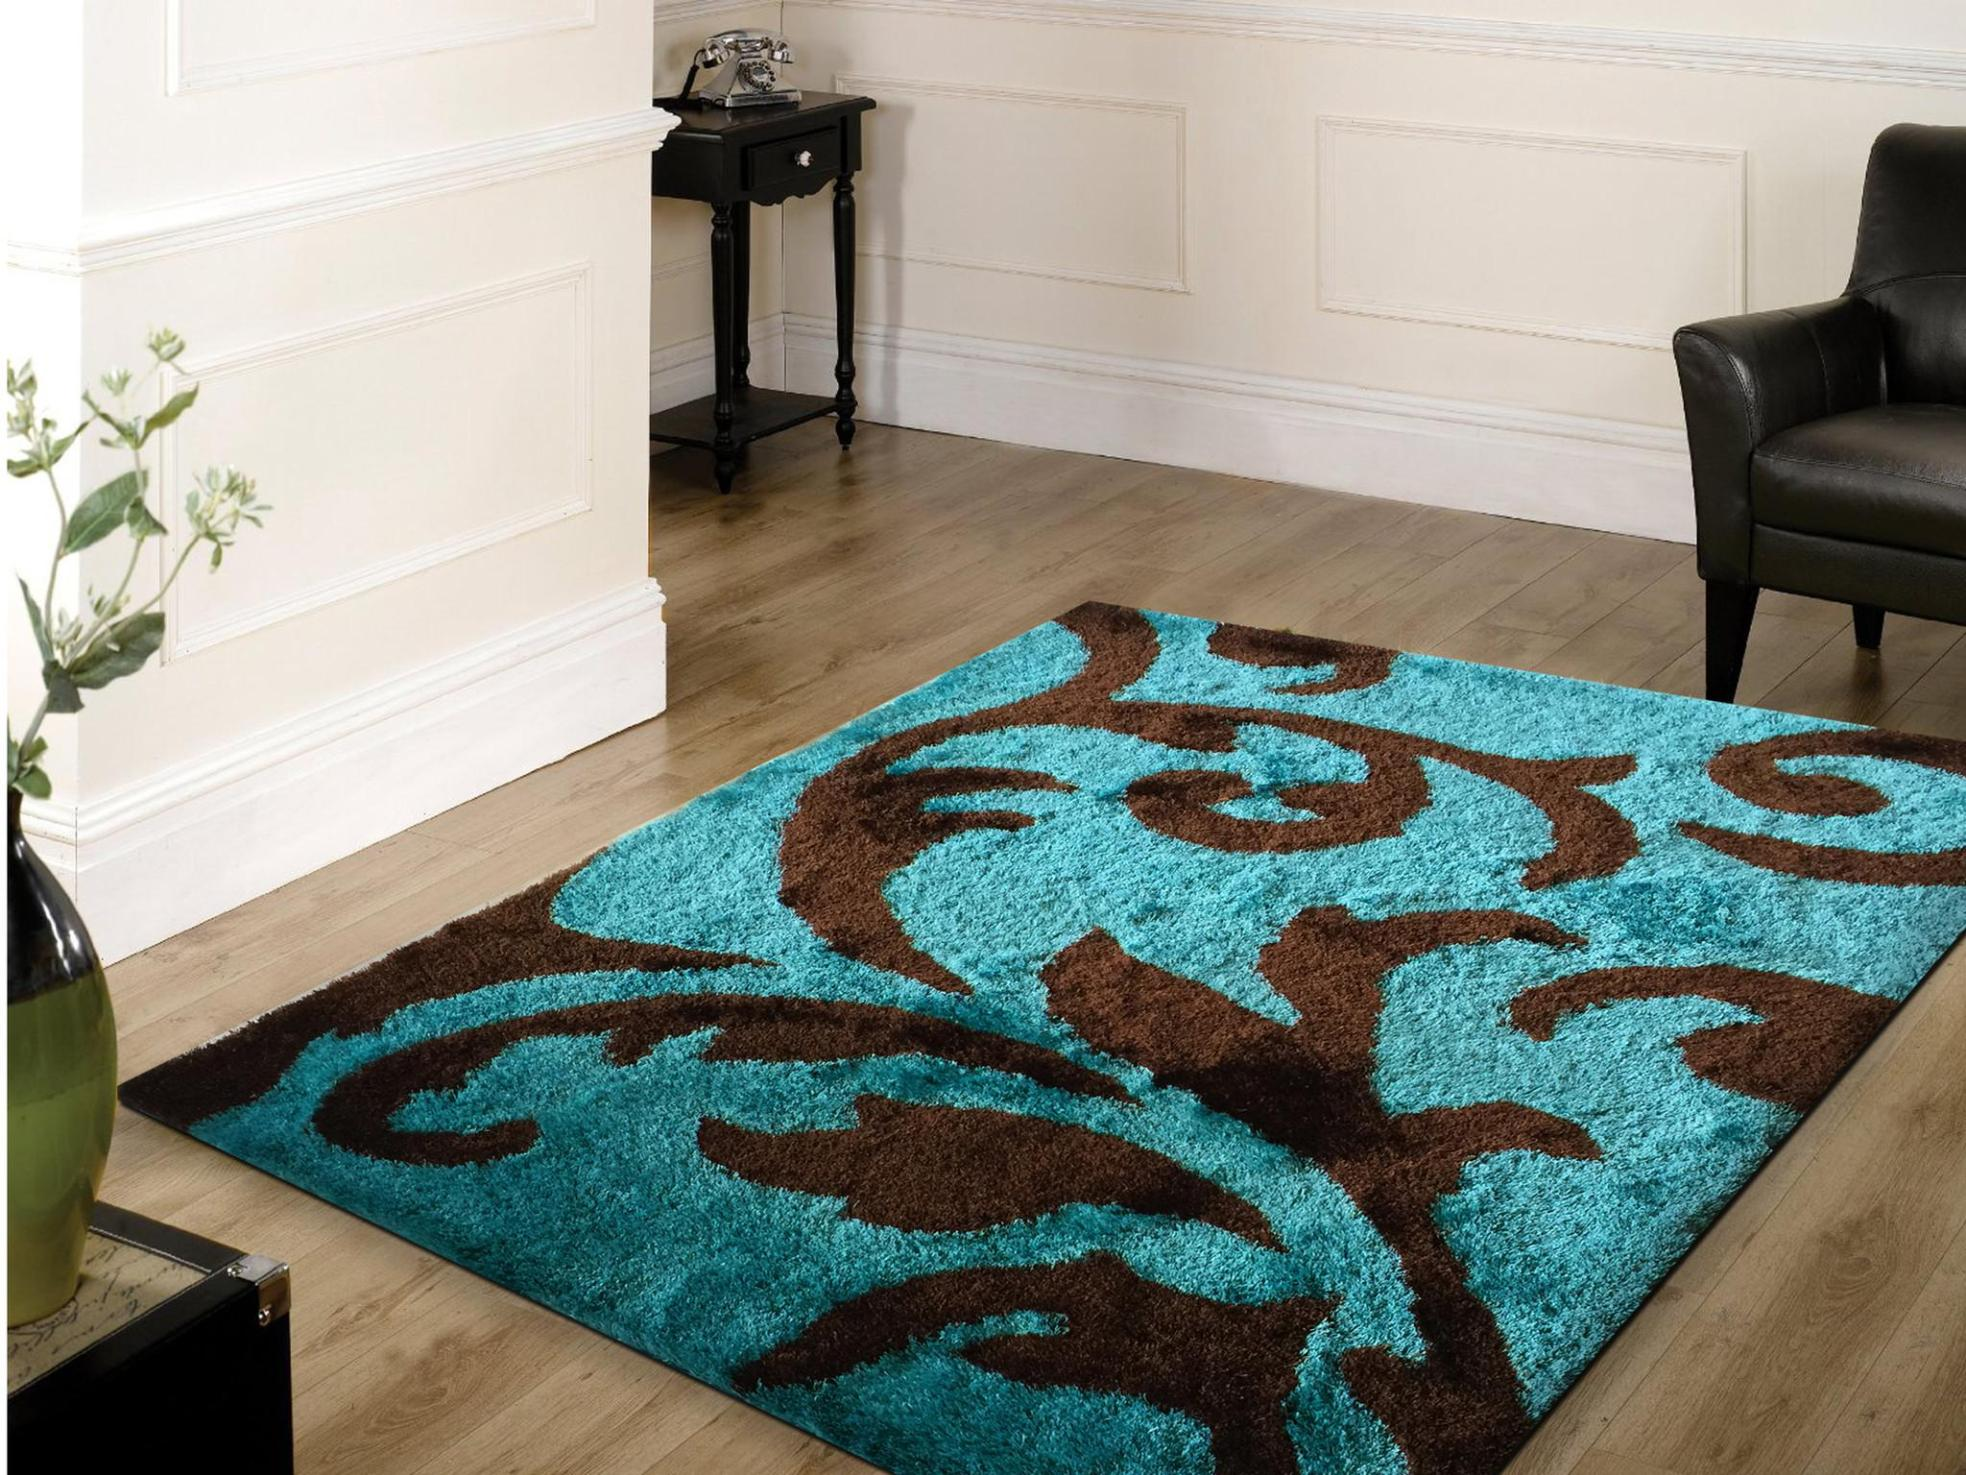 Image of: Brown And Turquoise Area Rug